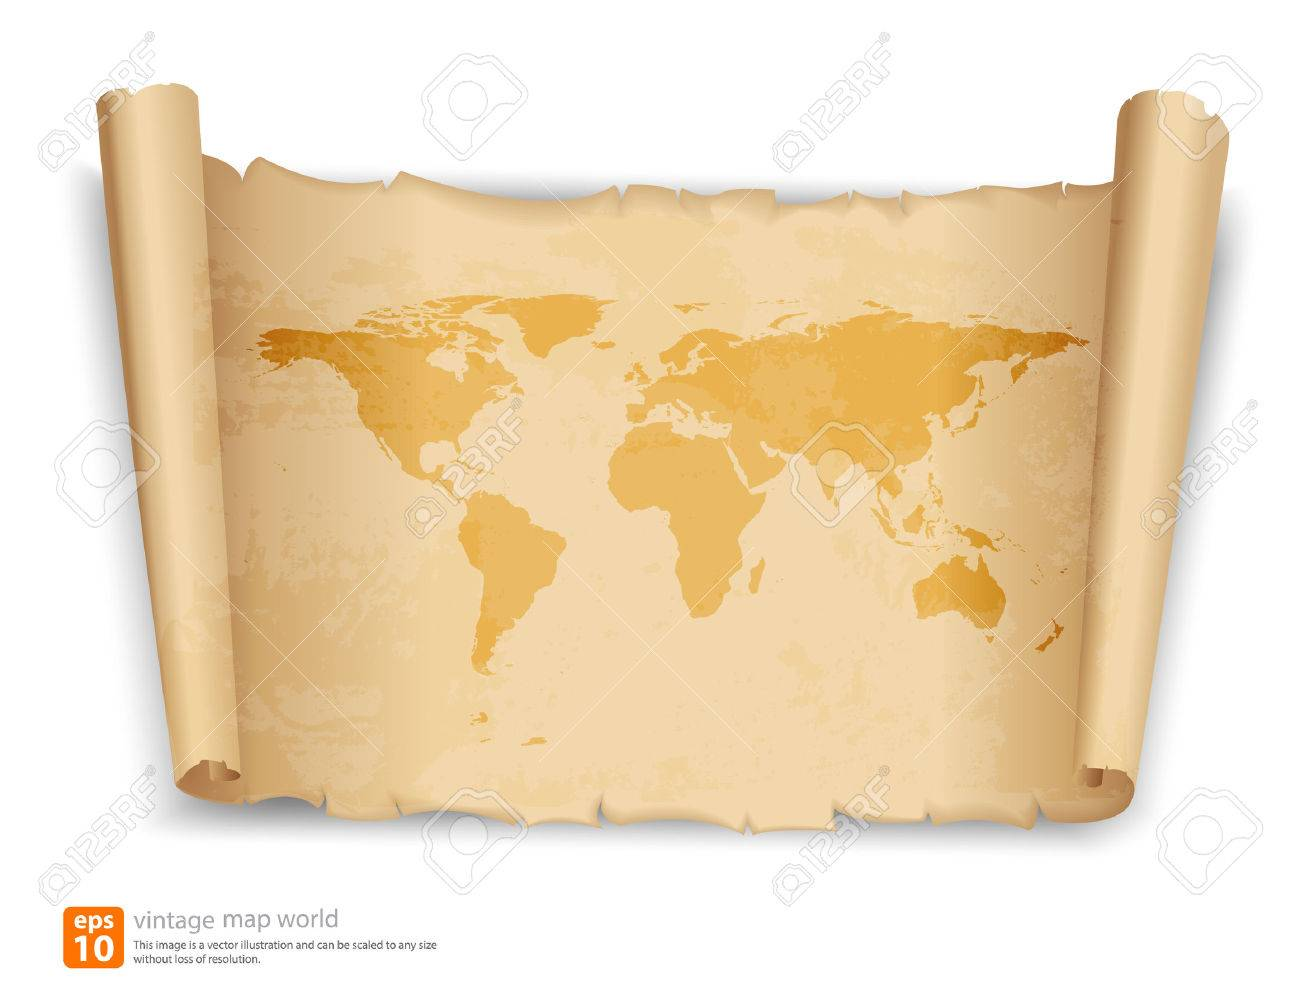 World map on vintage scroll paper vector format royalty free world map on vintage scroll paper vector format stock vector 33879268 gumiabroncs Gallery